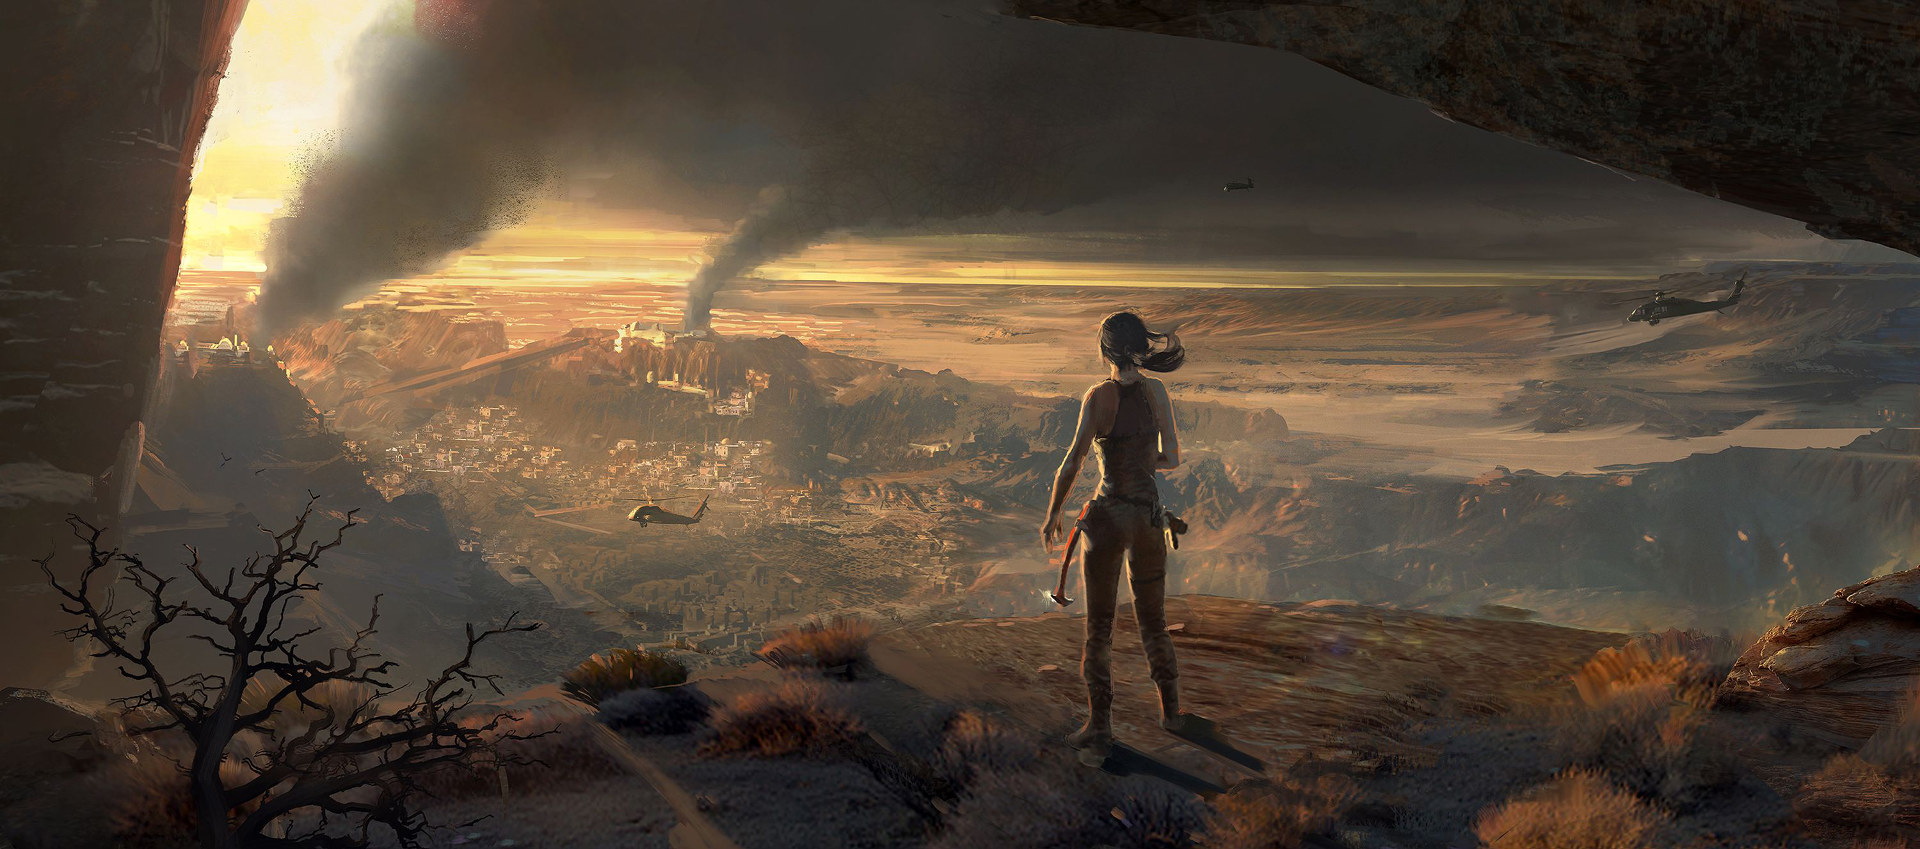 RISE OF THE TOMB RAIDER - CONCEPT ART